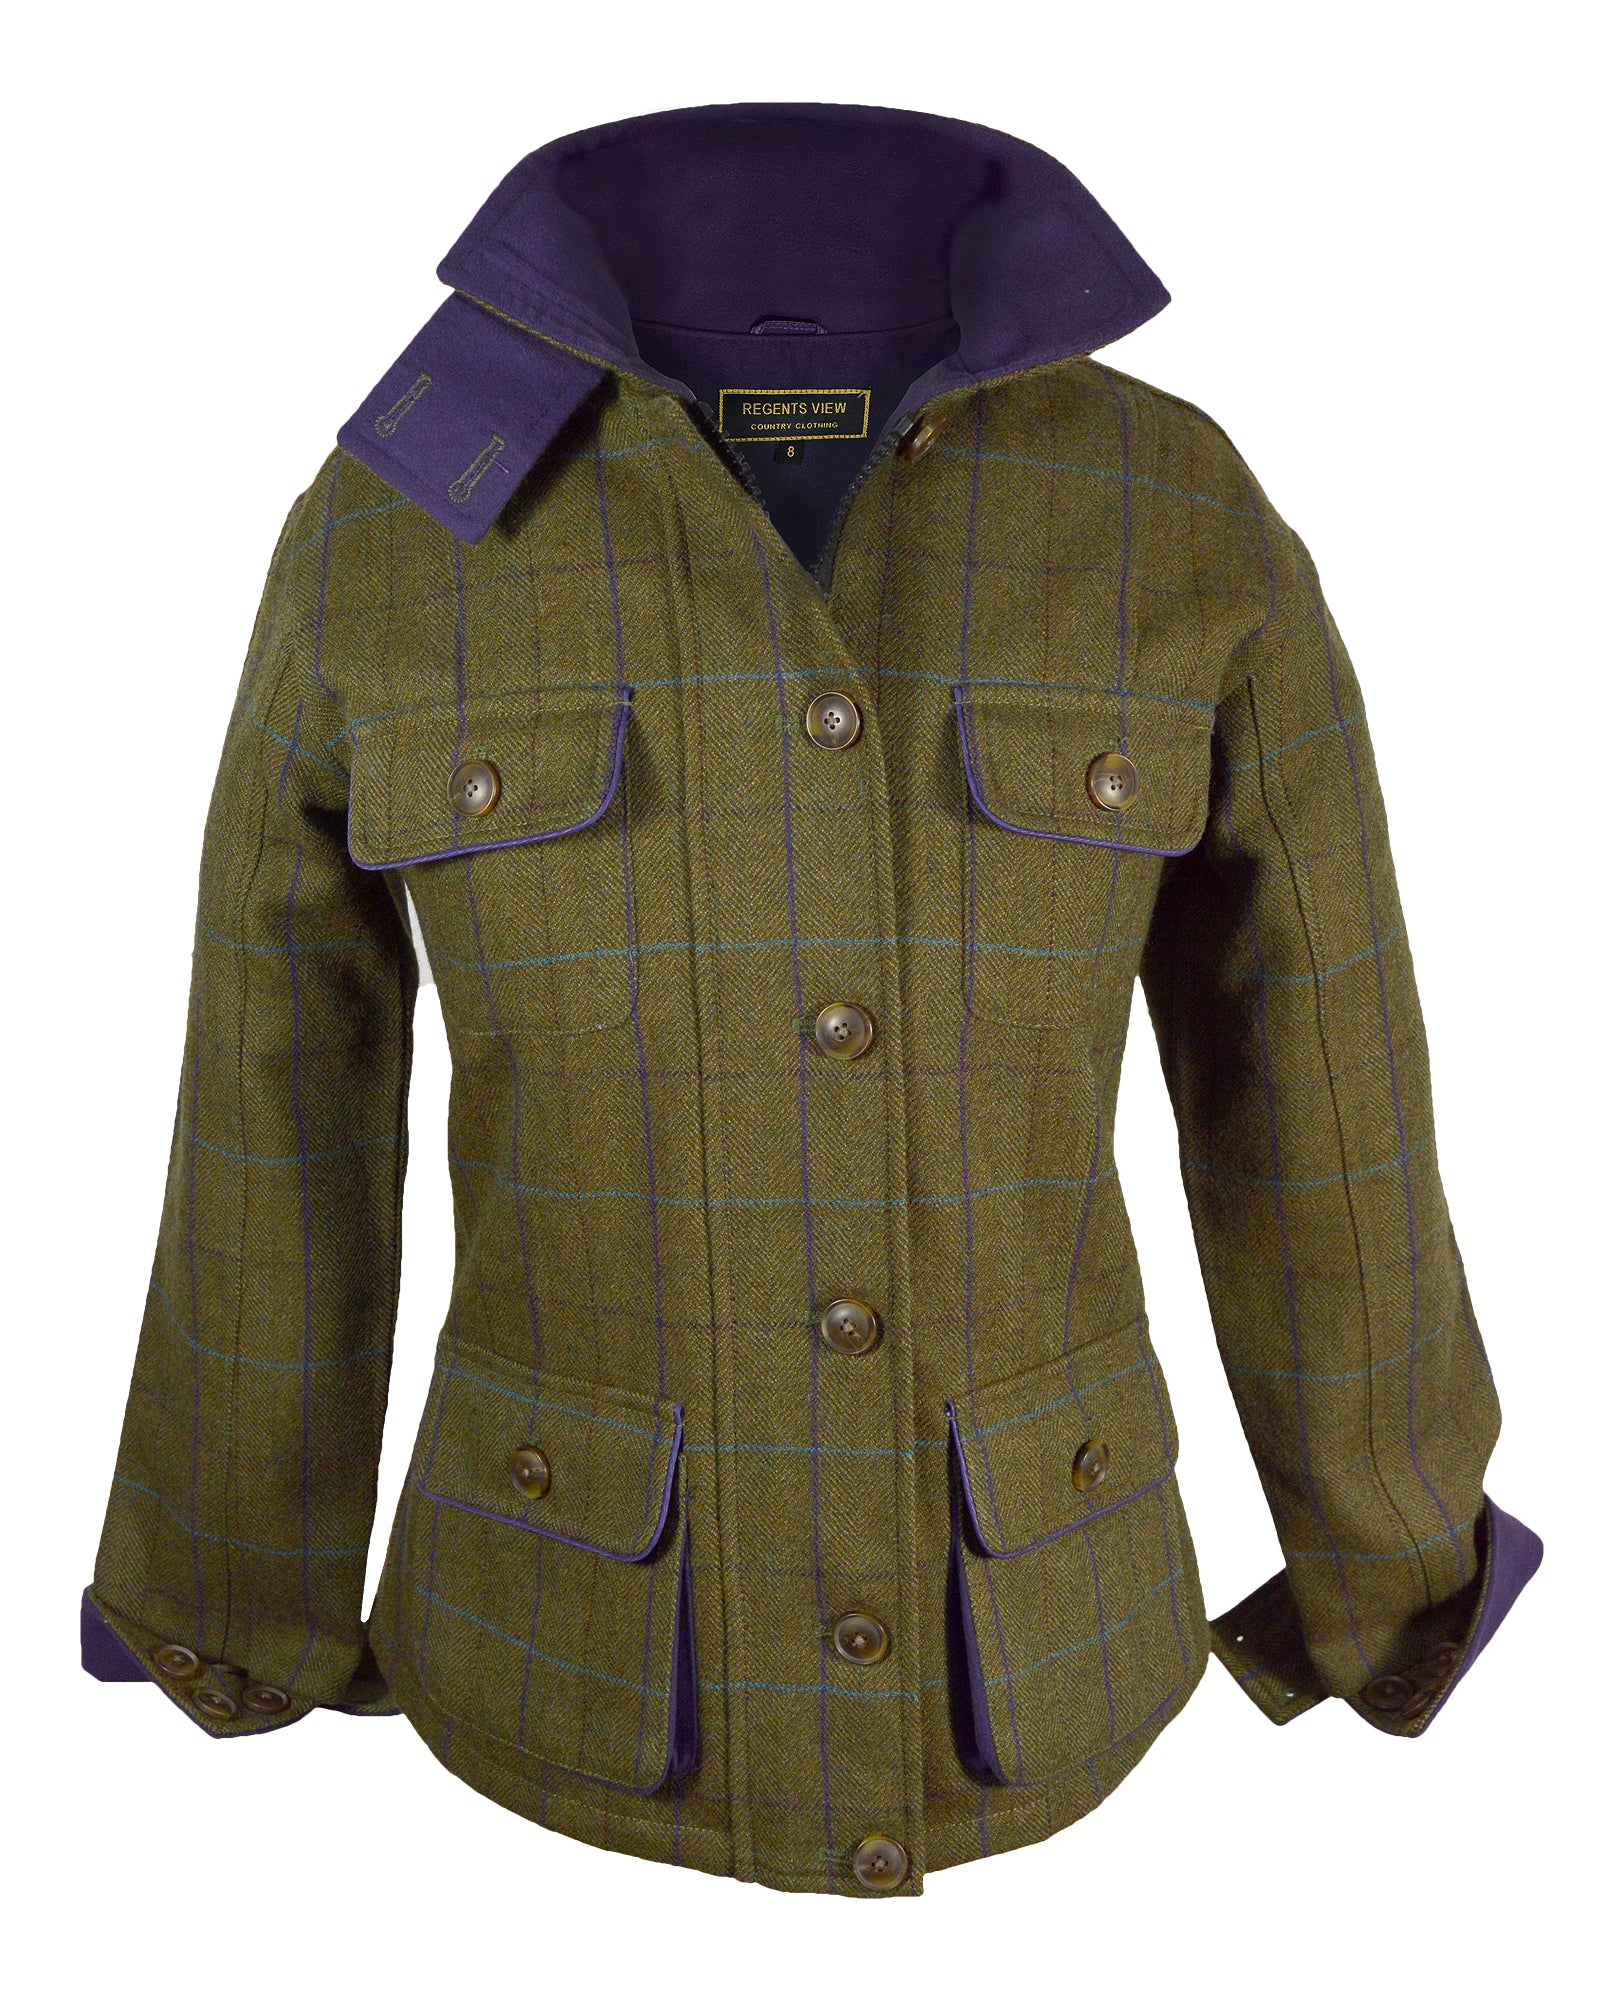 Regents View Stylish Women Tweed Jacket - Purple